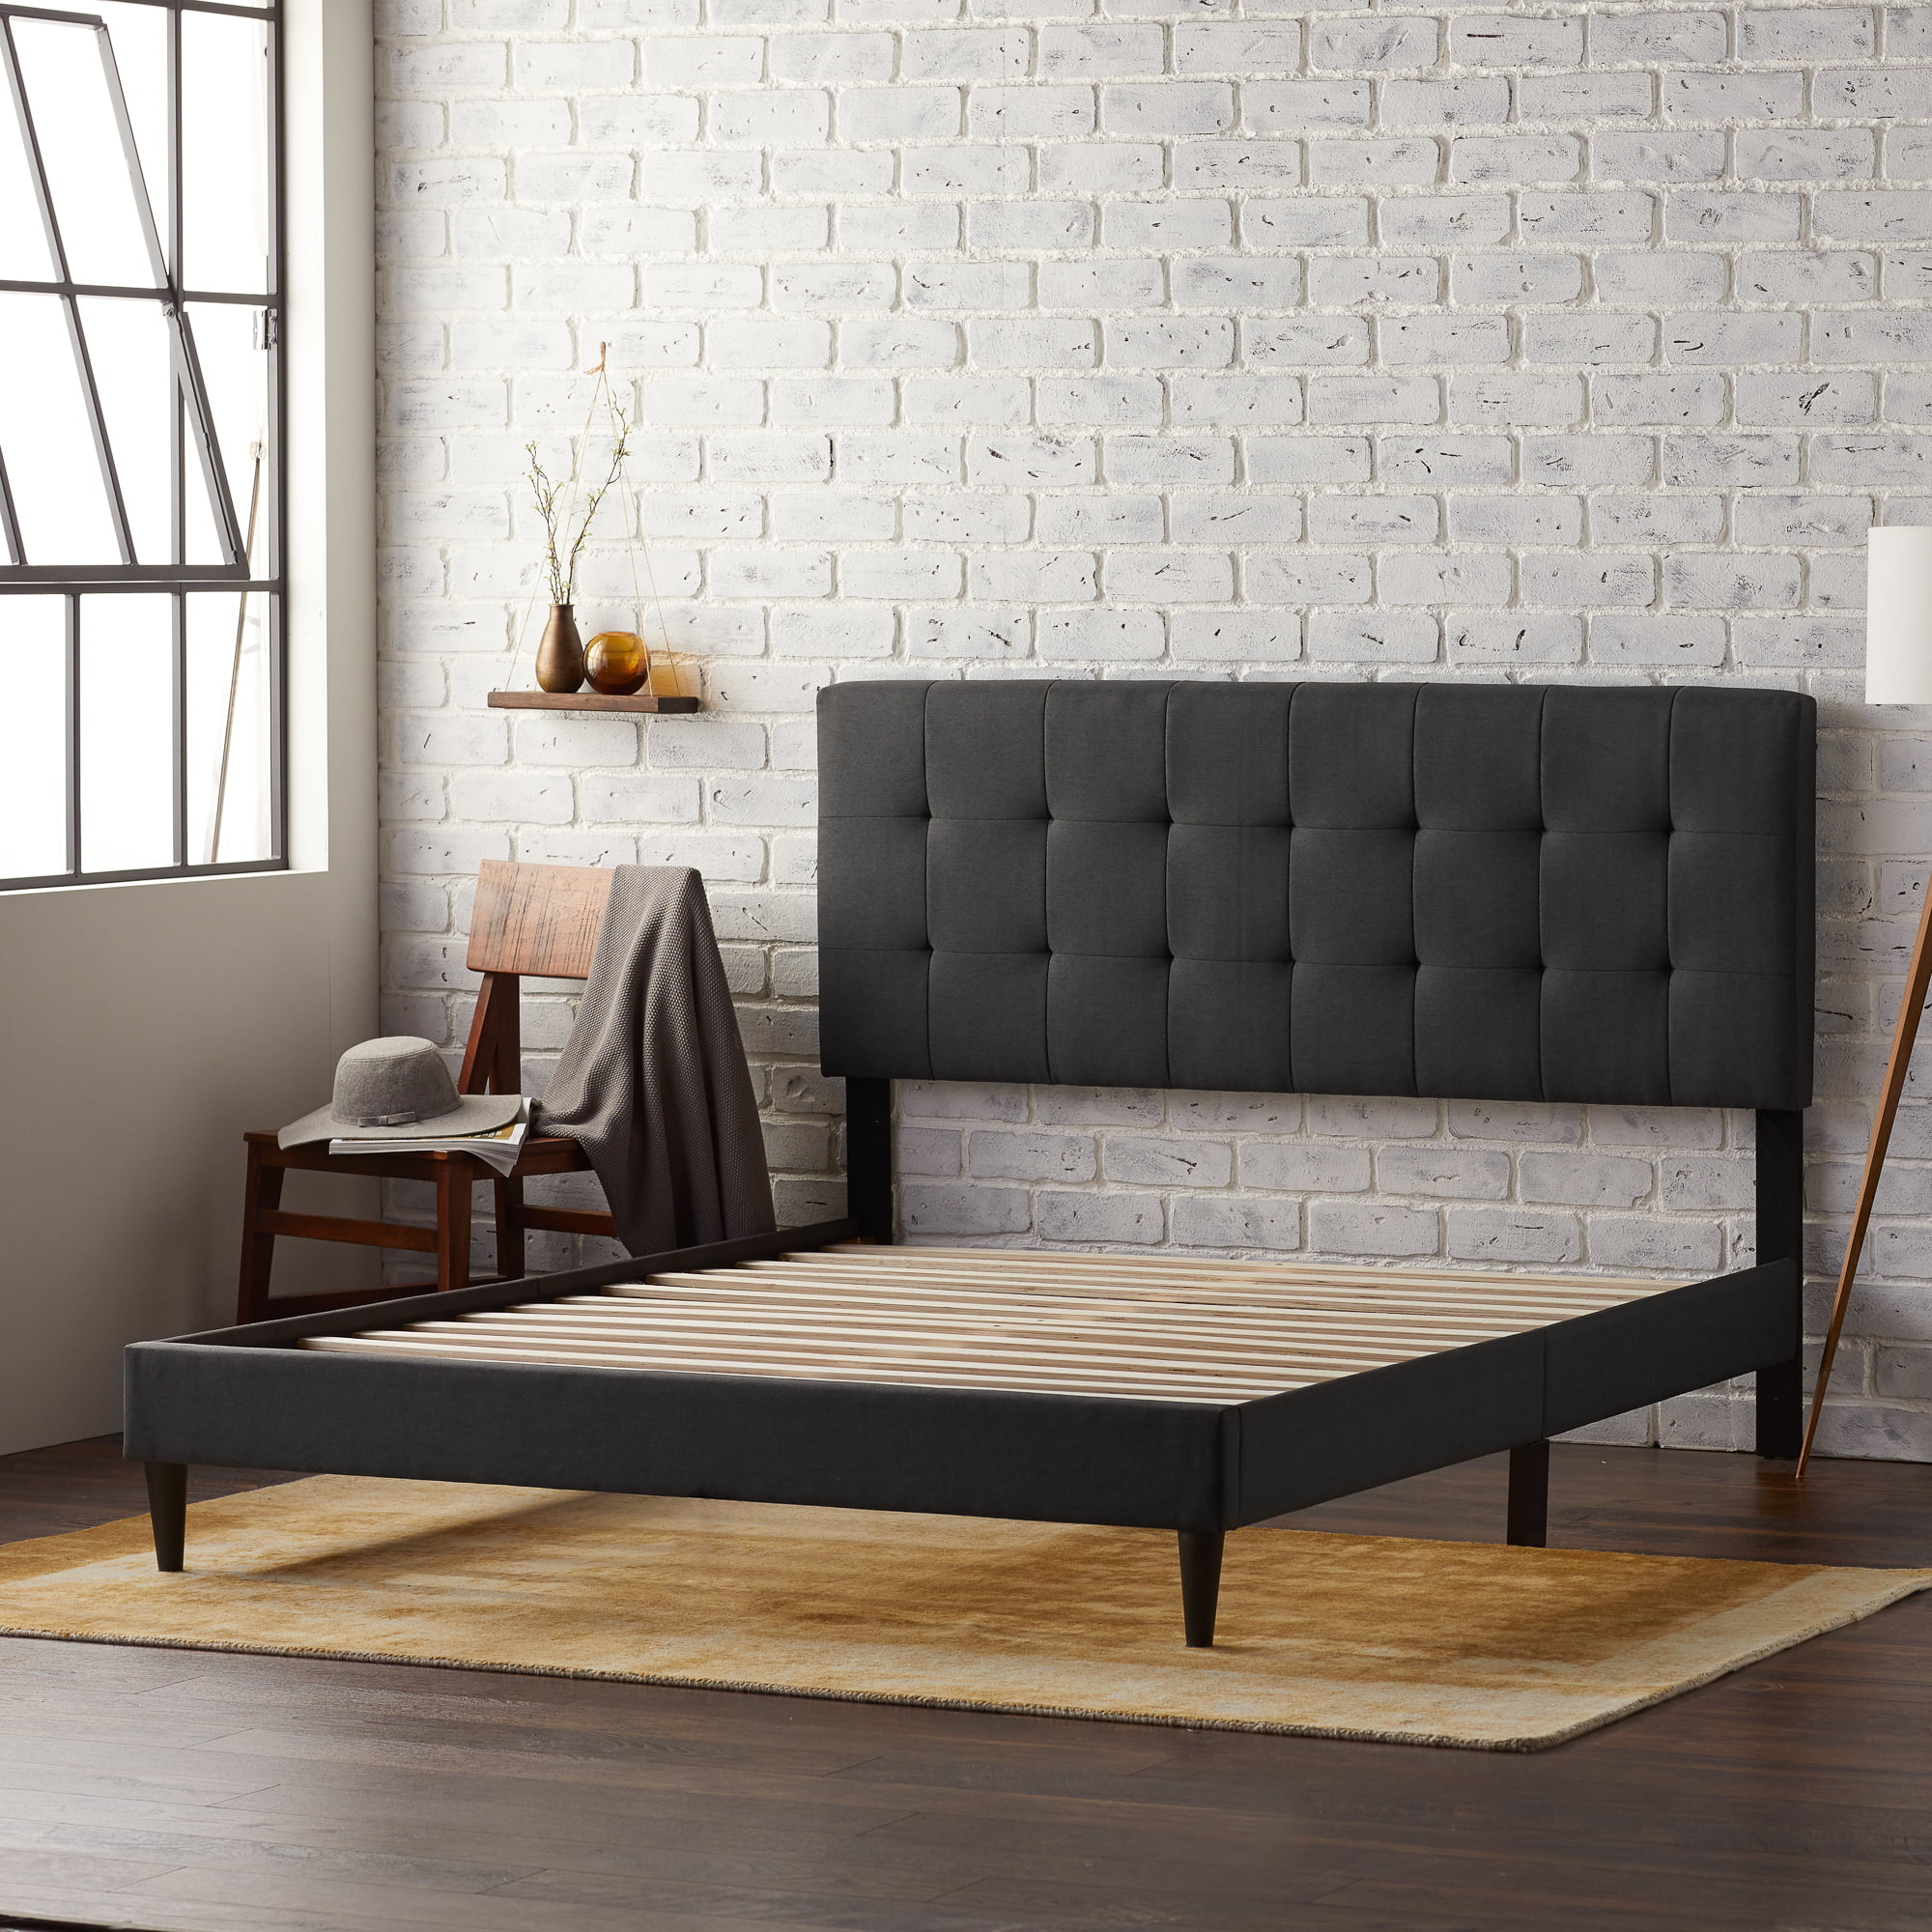 Rest Haven Upholstered Platform Bed Frame With Square Tufted Headboard Queen Charcoal Walmart Com Walmart Com